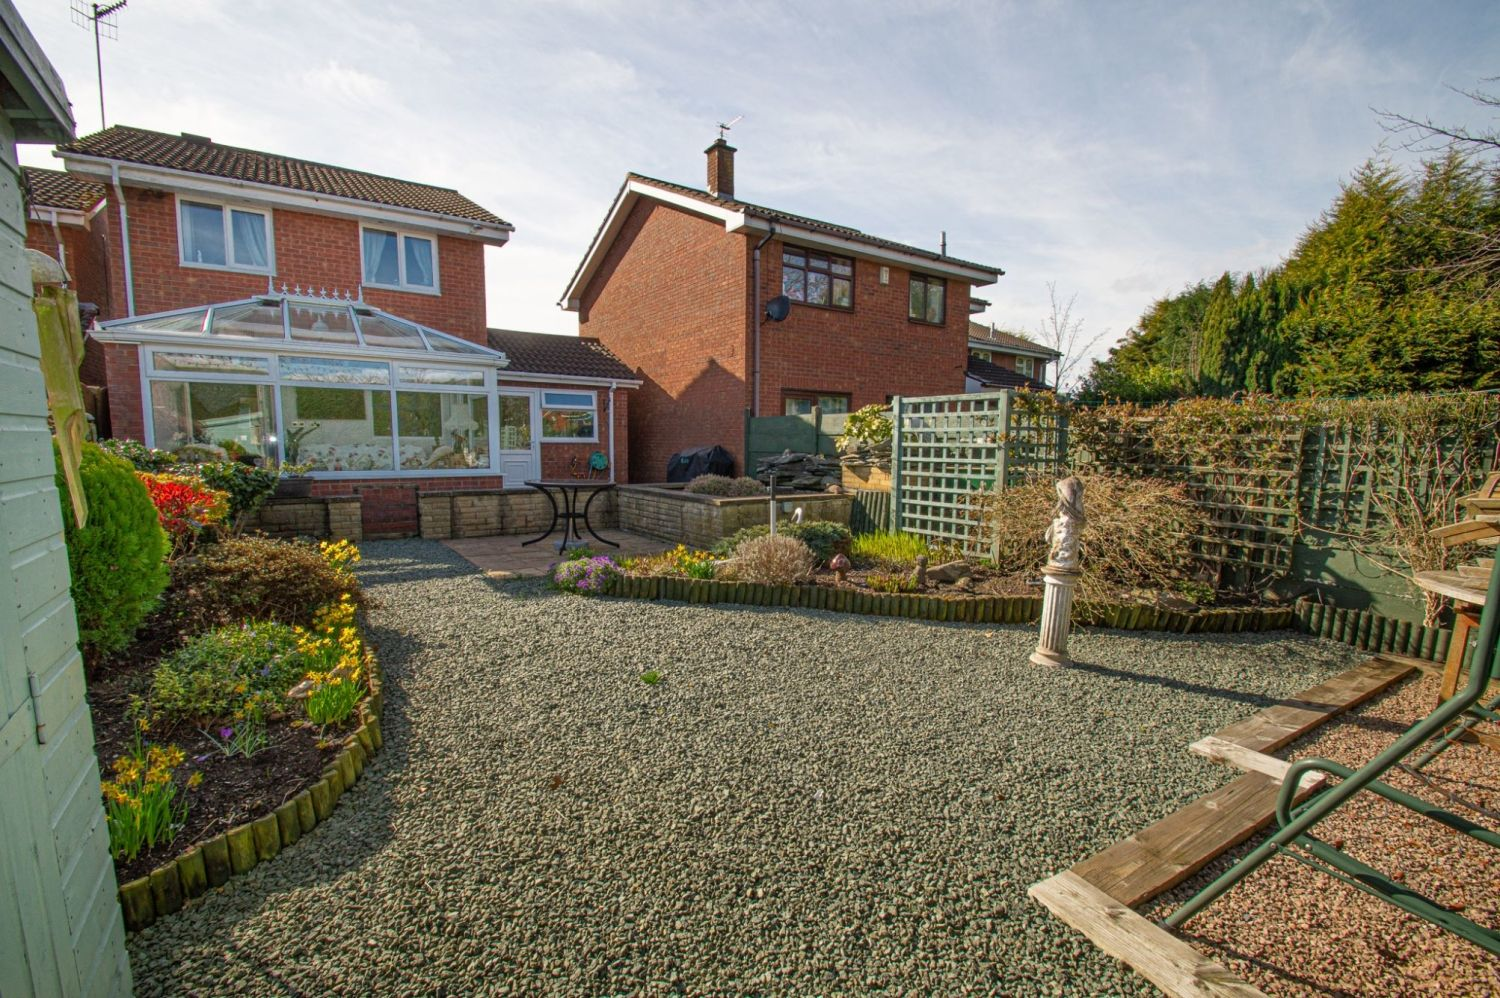 3 bed detached for sale in Broomehill Close, Brierley Hill  - Property Image 17